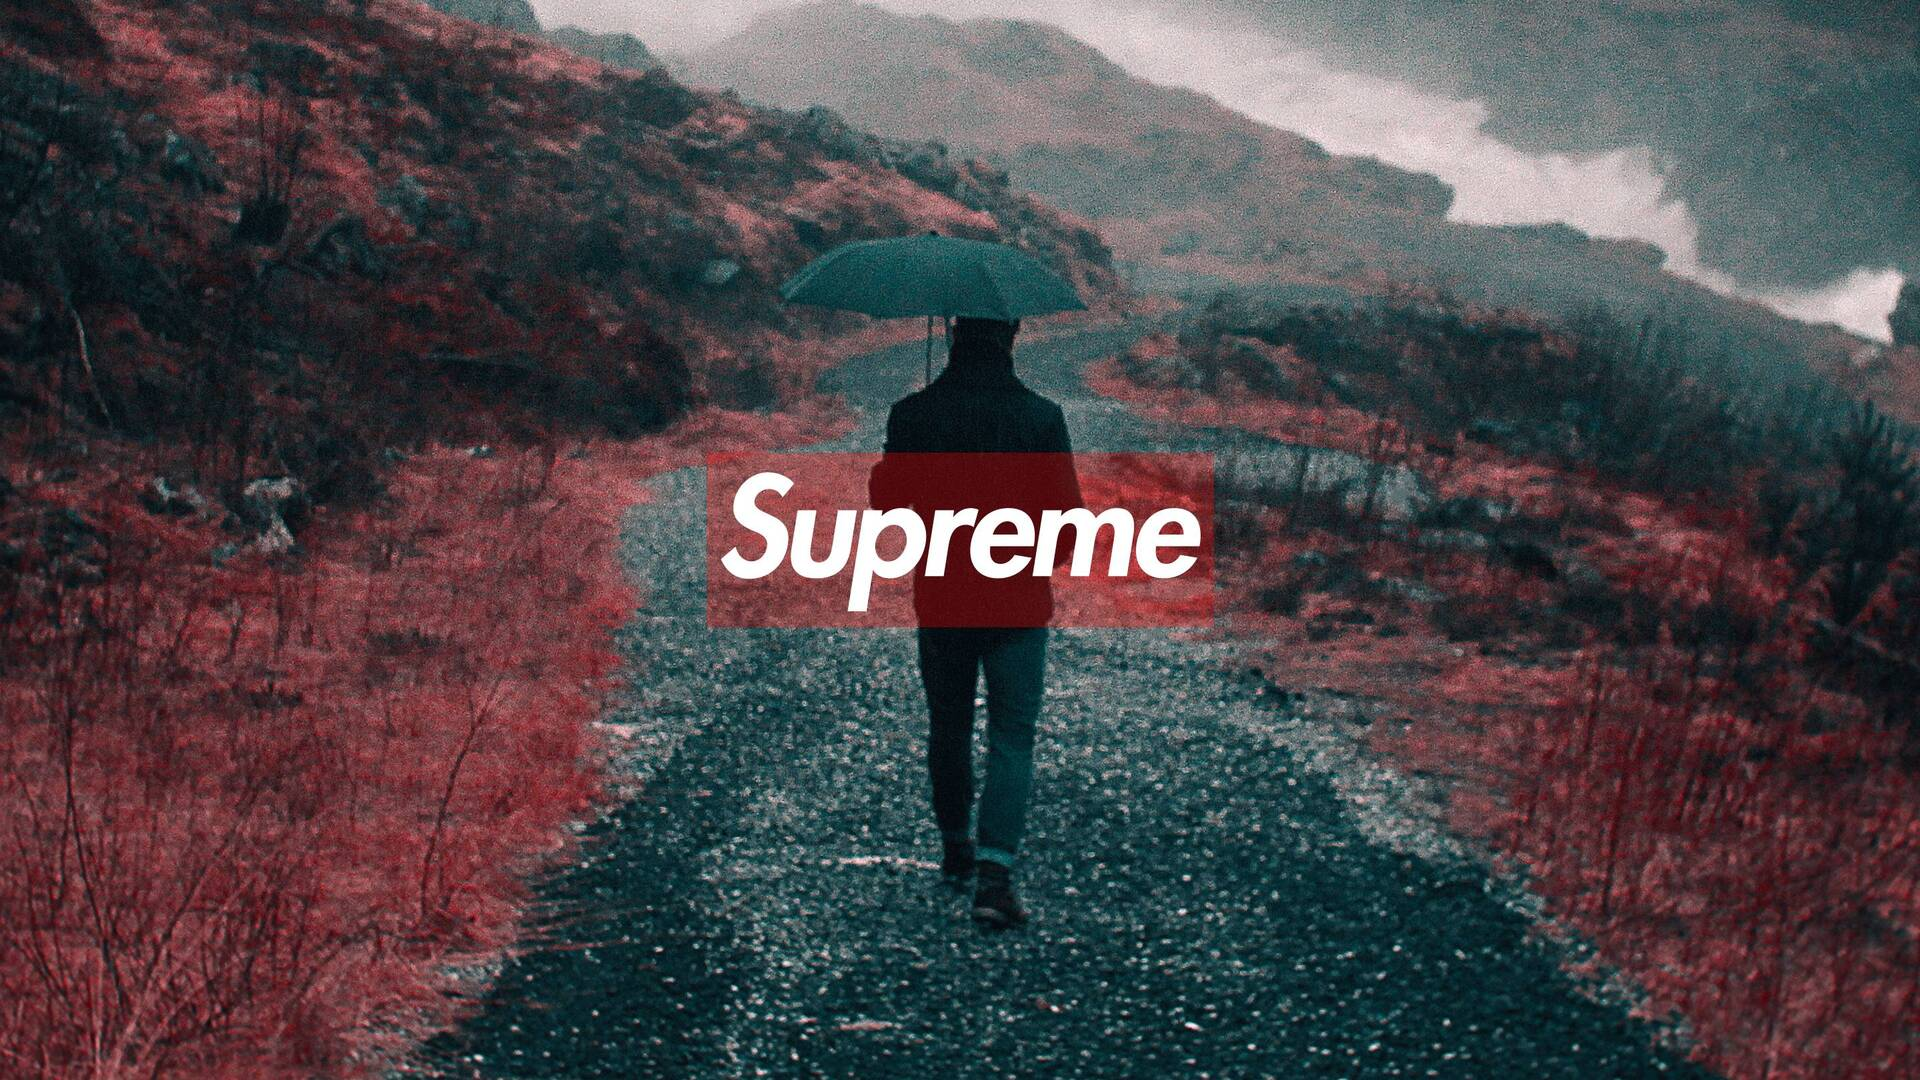 1920x1080 supreme laptop full hd 1080p hd 4k wallpapers, images